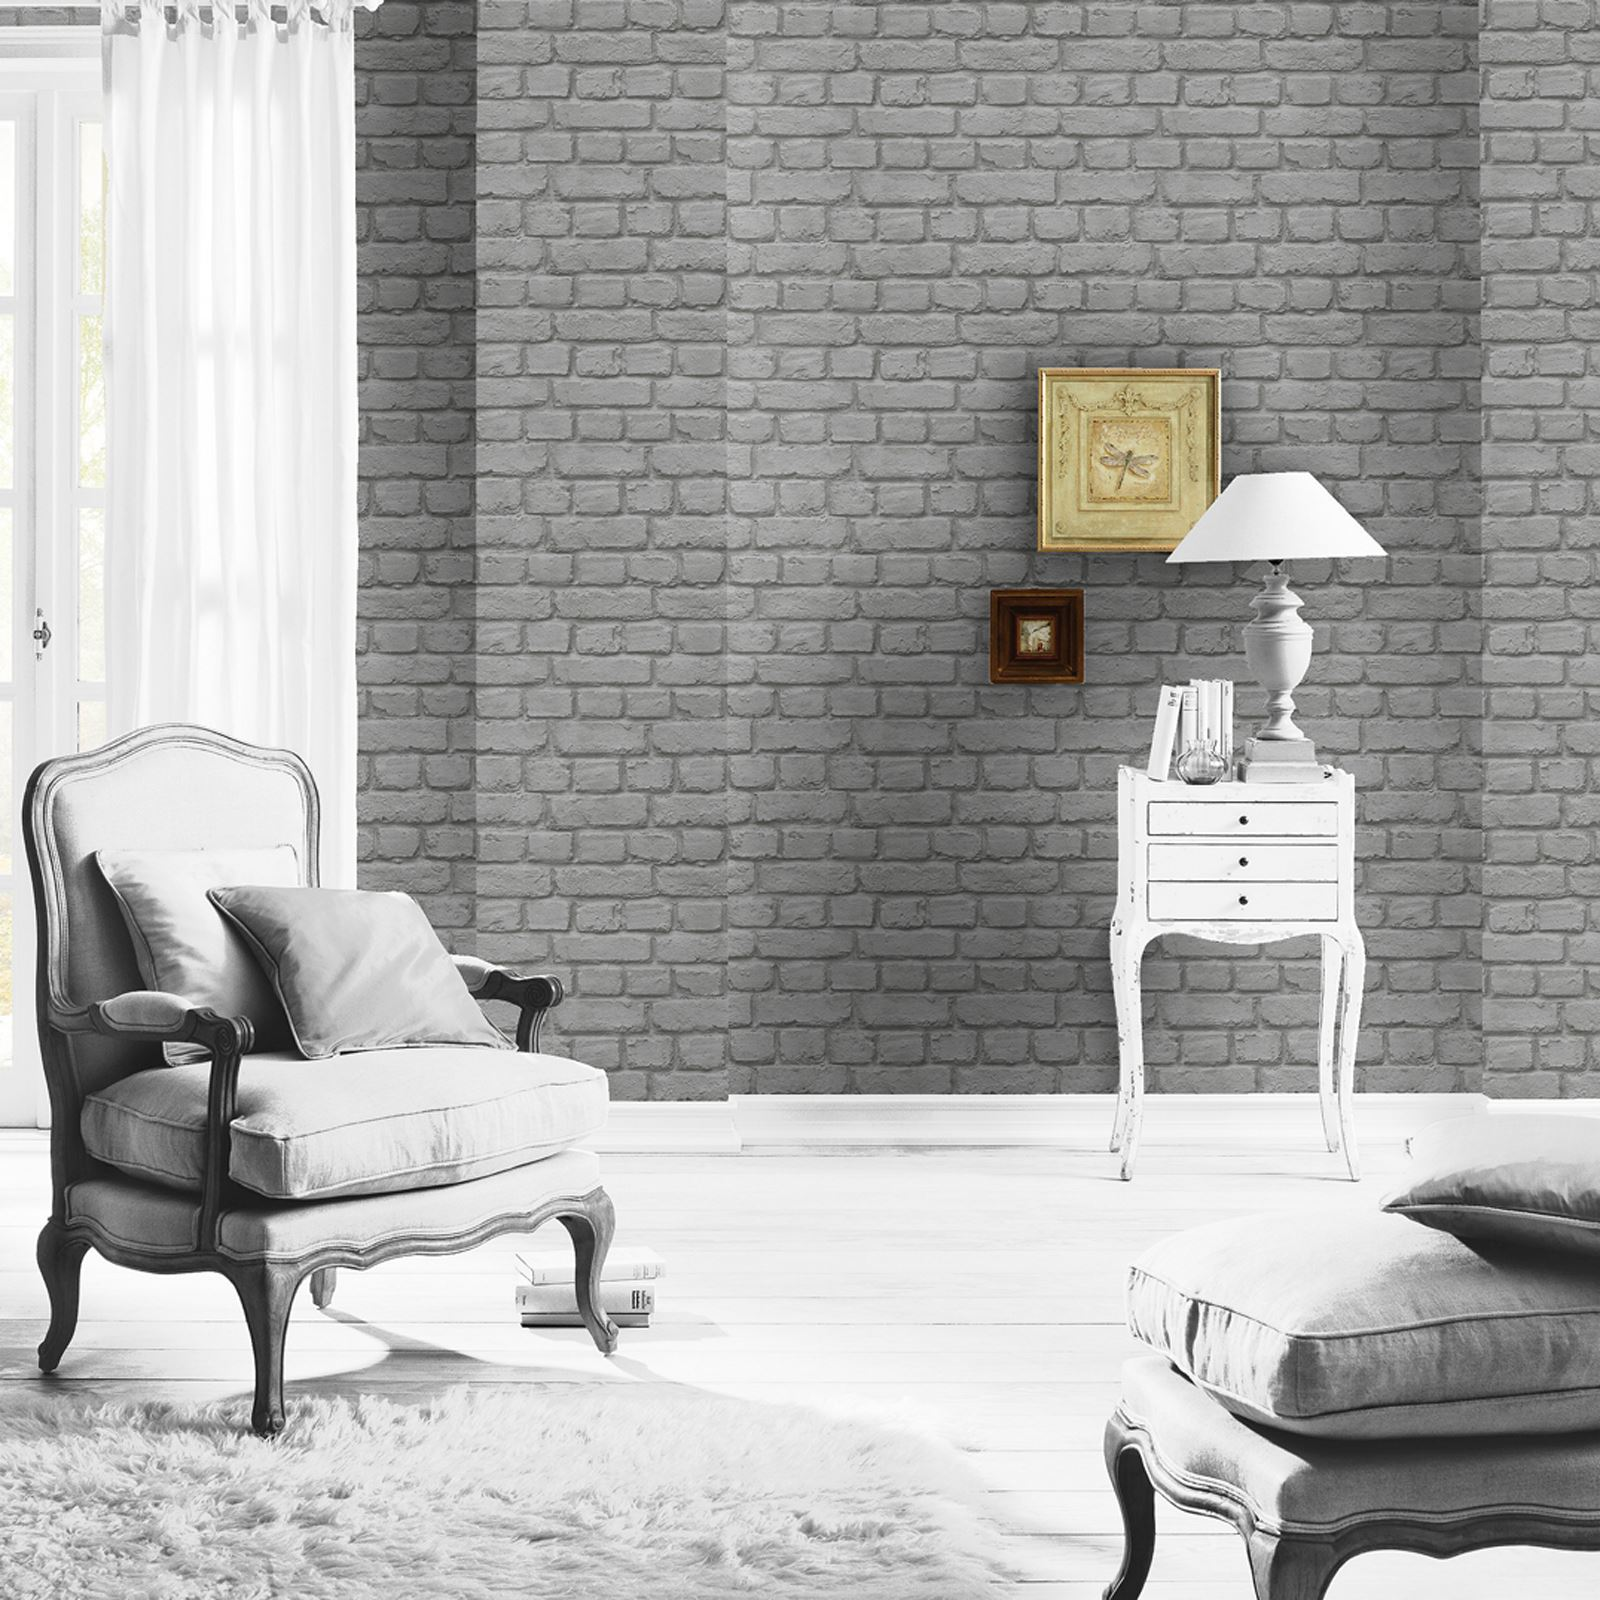 rasch fine decor 10m luxury brick effect wallpaper stone wall grey black red ebay. Black Bedroom Furniture Sets. Home Design Ideas